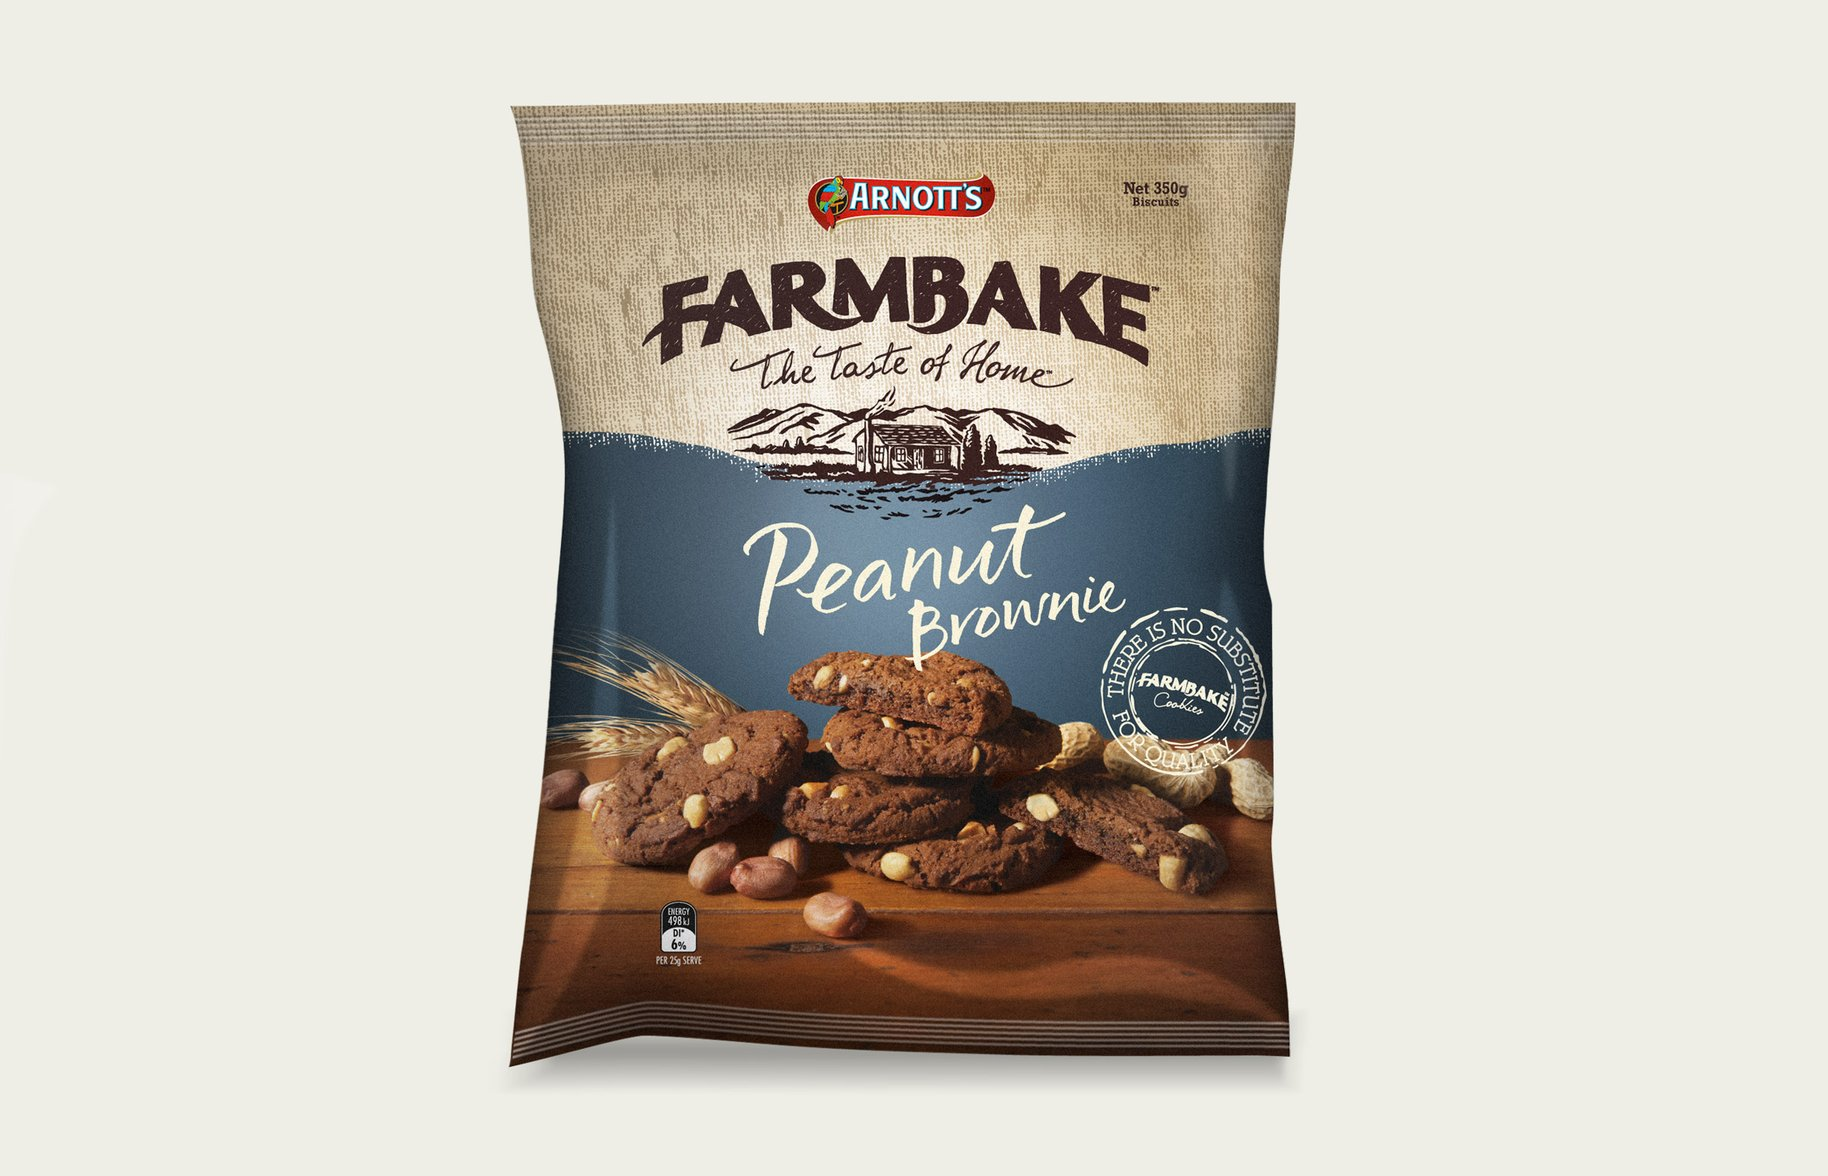 FarmBake Peanut Brownie Biscuits